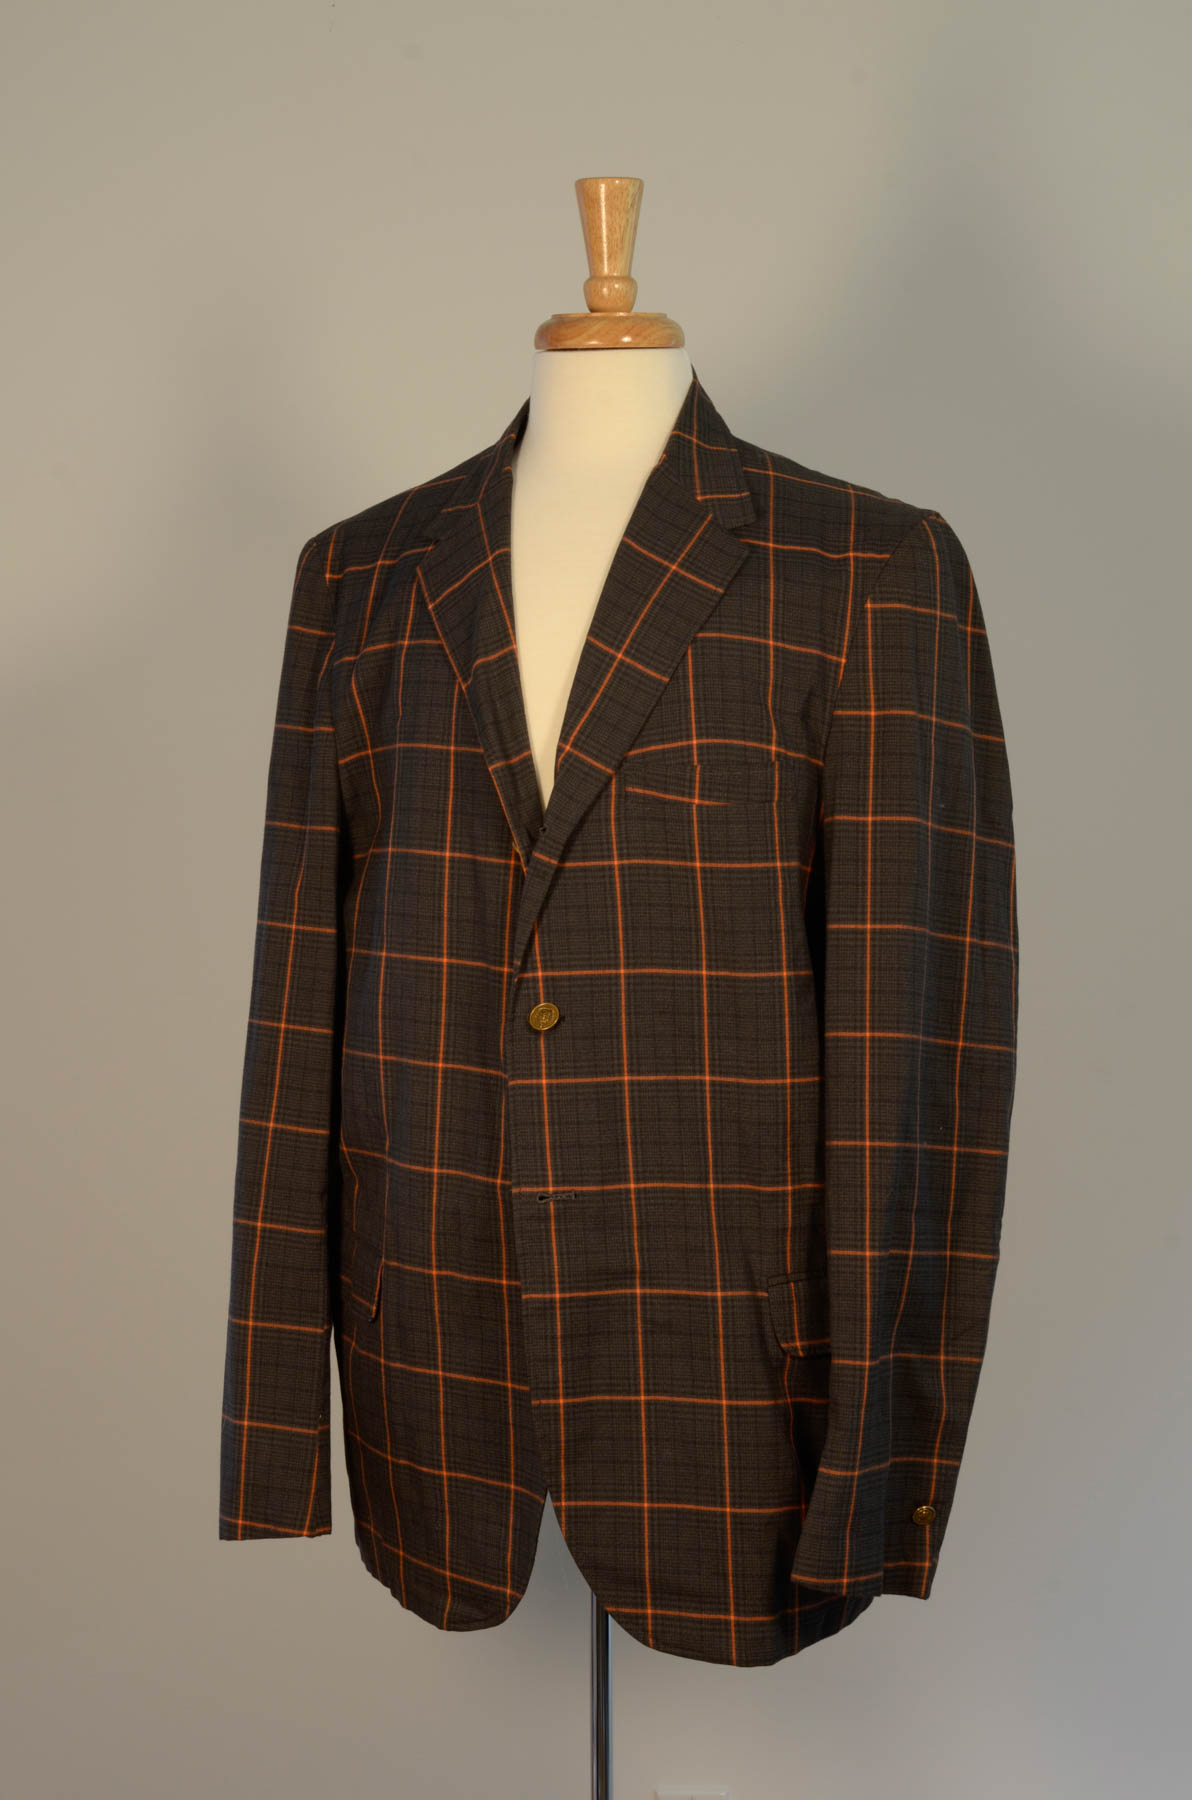 Reunion Jacket 1942 Variation I Front